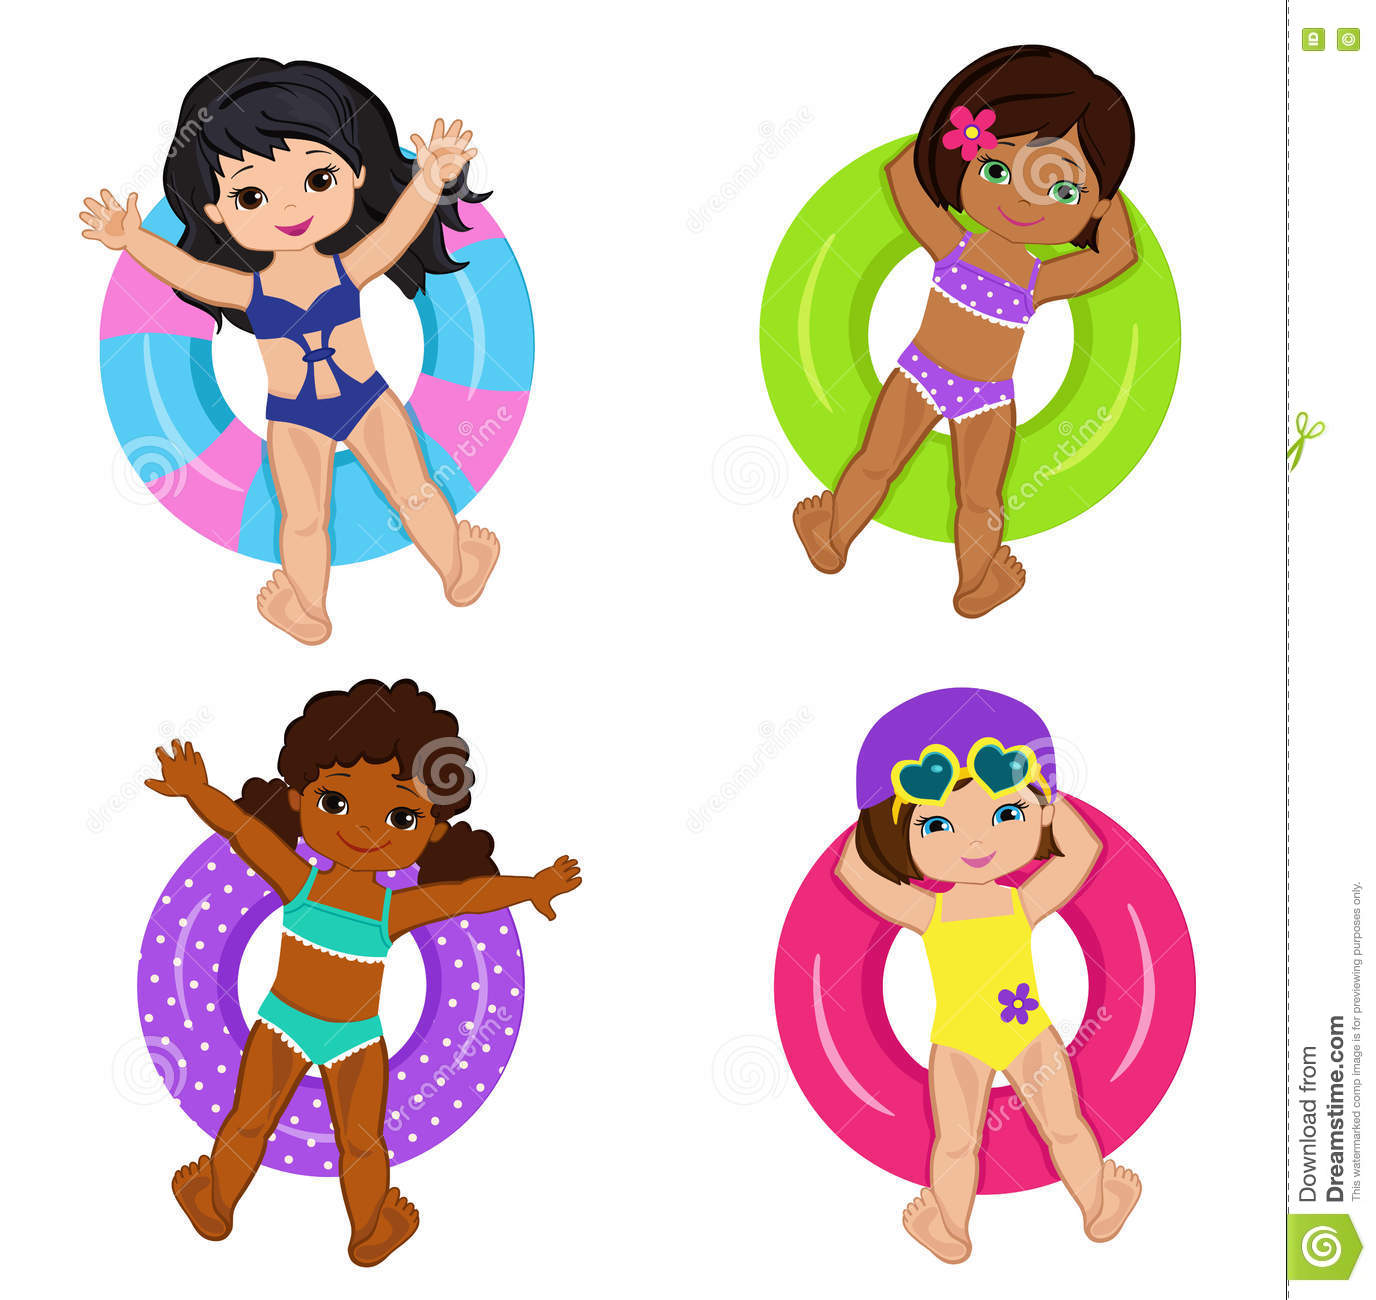 Children's Pool Party On Background. Stock Vector - Image: 71366667